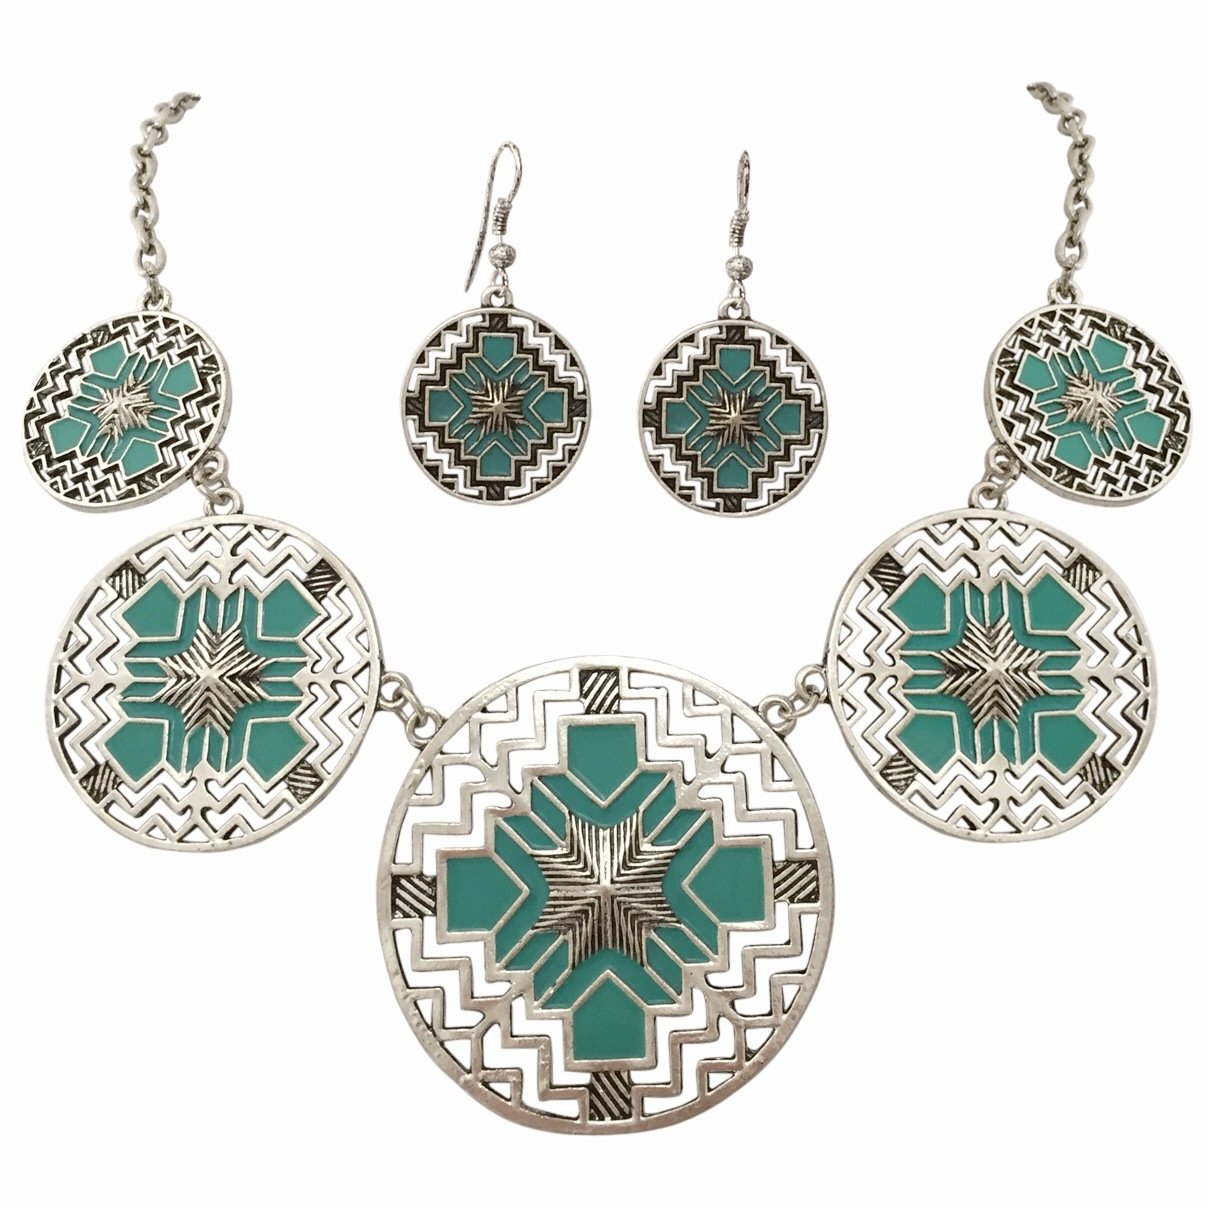 Aztec 5 Disk Cutout Southwestern Look Silver Tone Boutique Style Necklace Earrings Set (BLUE)